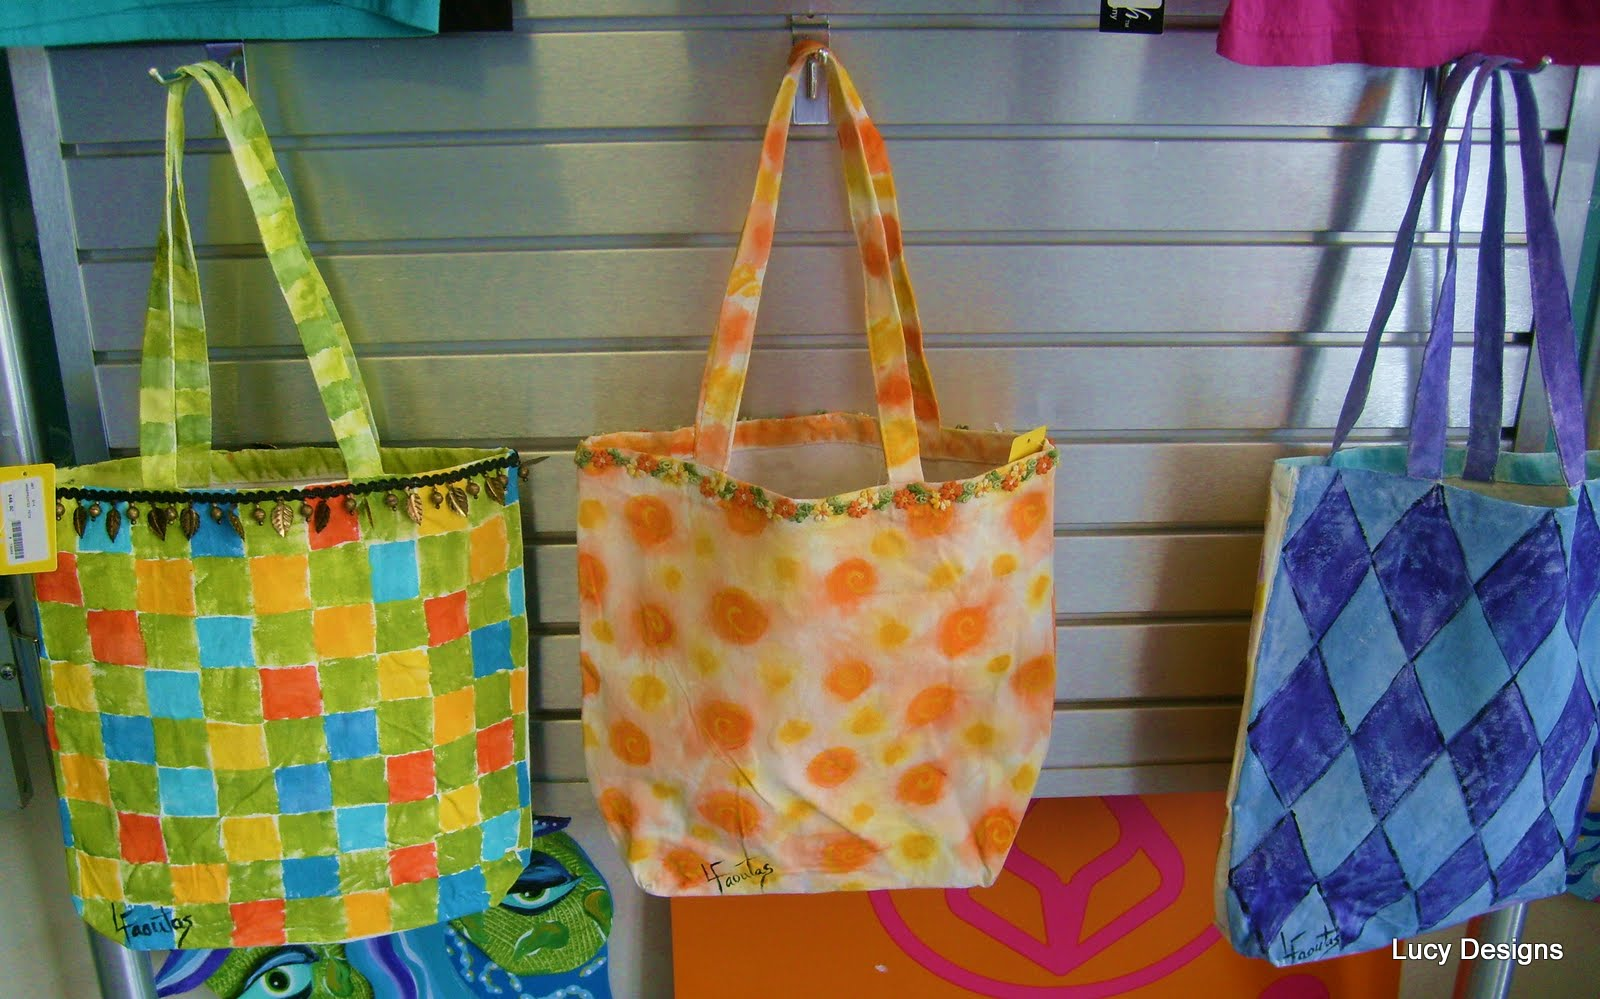 painted canvas bags DIY & How to Paint on Fabric Hand Painted Designs Chair Cushions Pillows ...